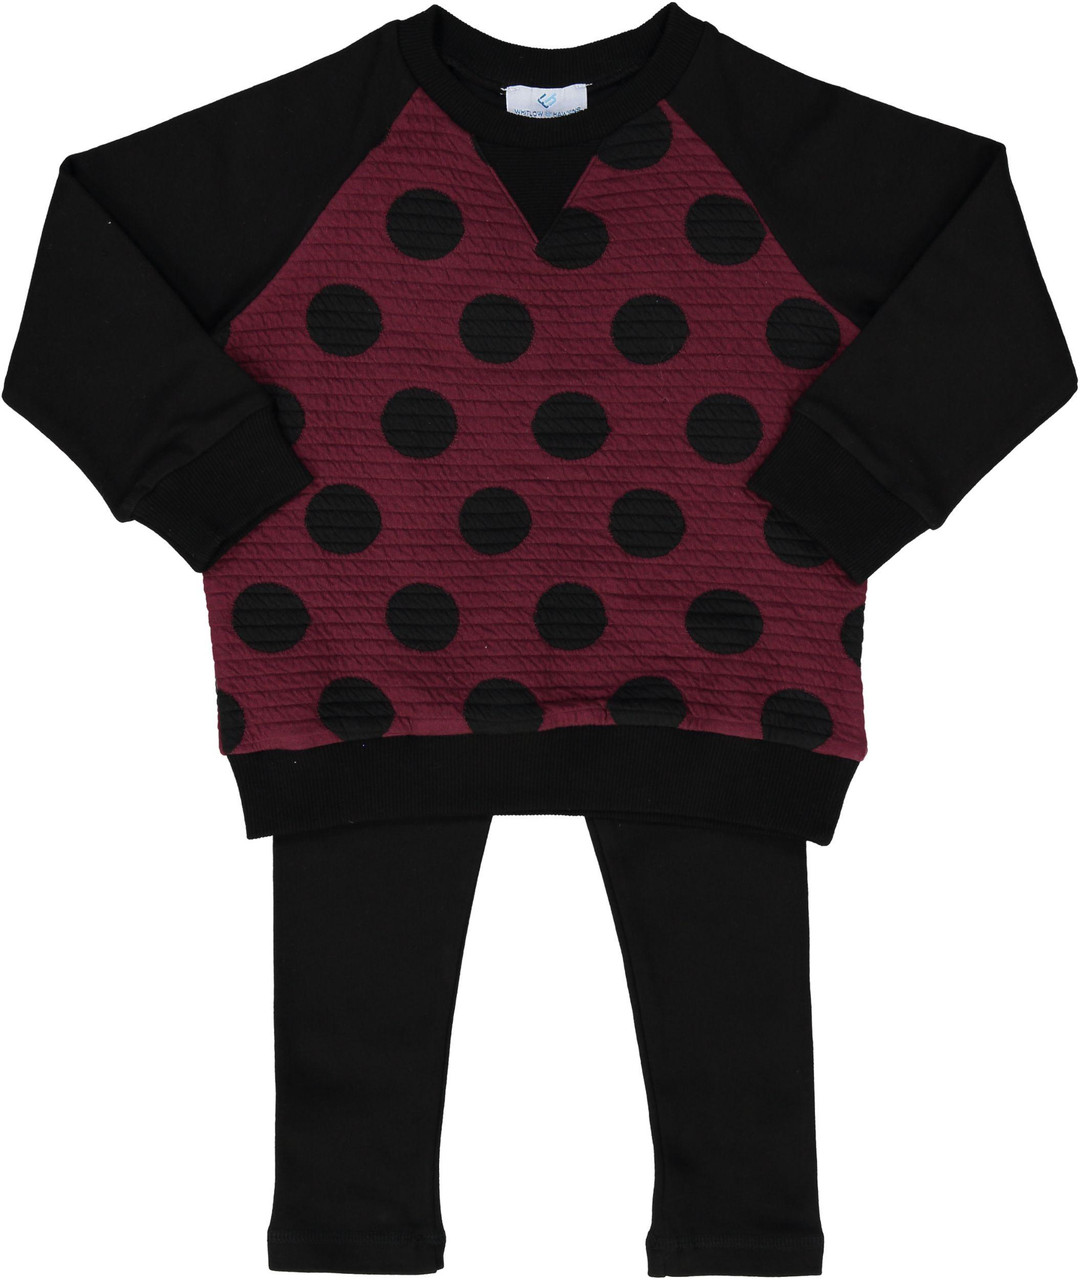 Whitlow & Hawkins Boys Girls Unisex Baby Dot Outfit - WHF198002